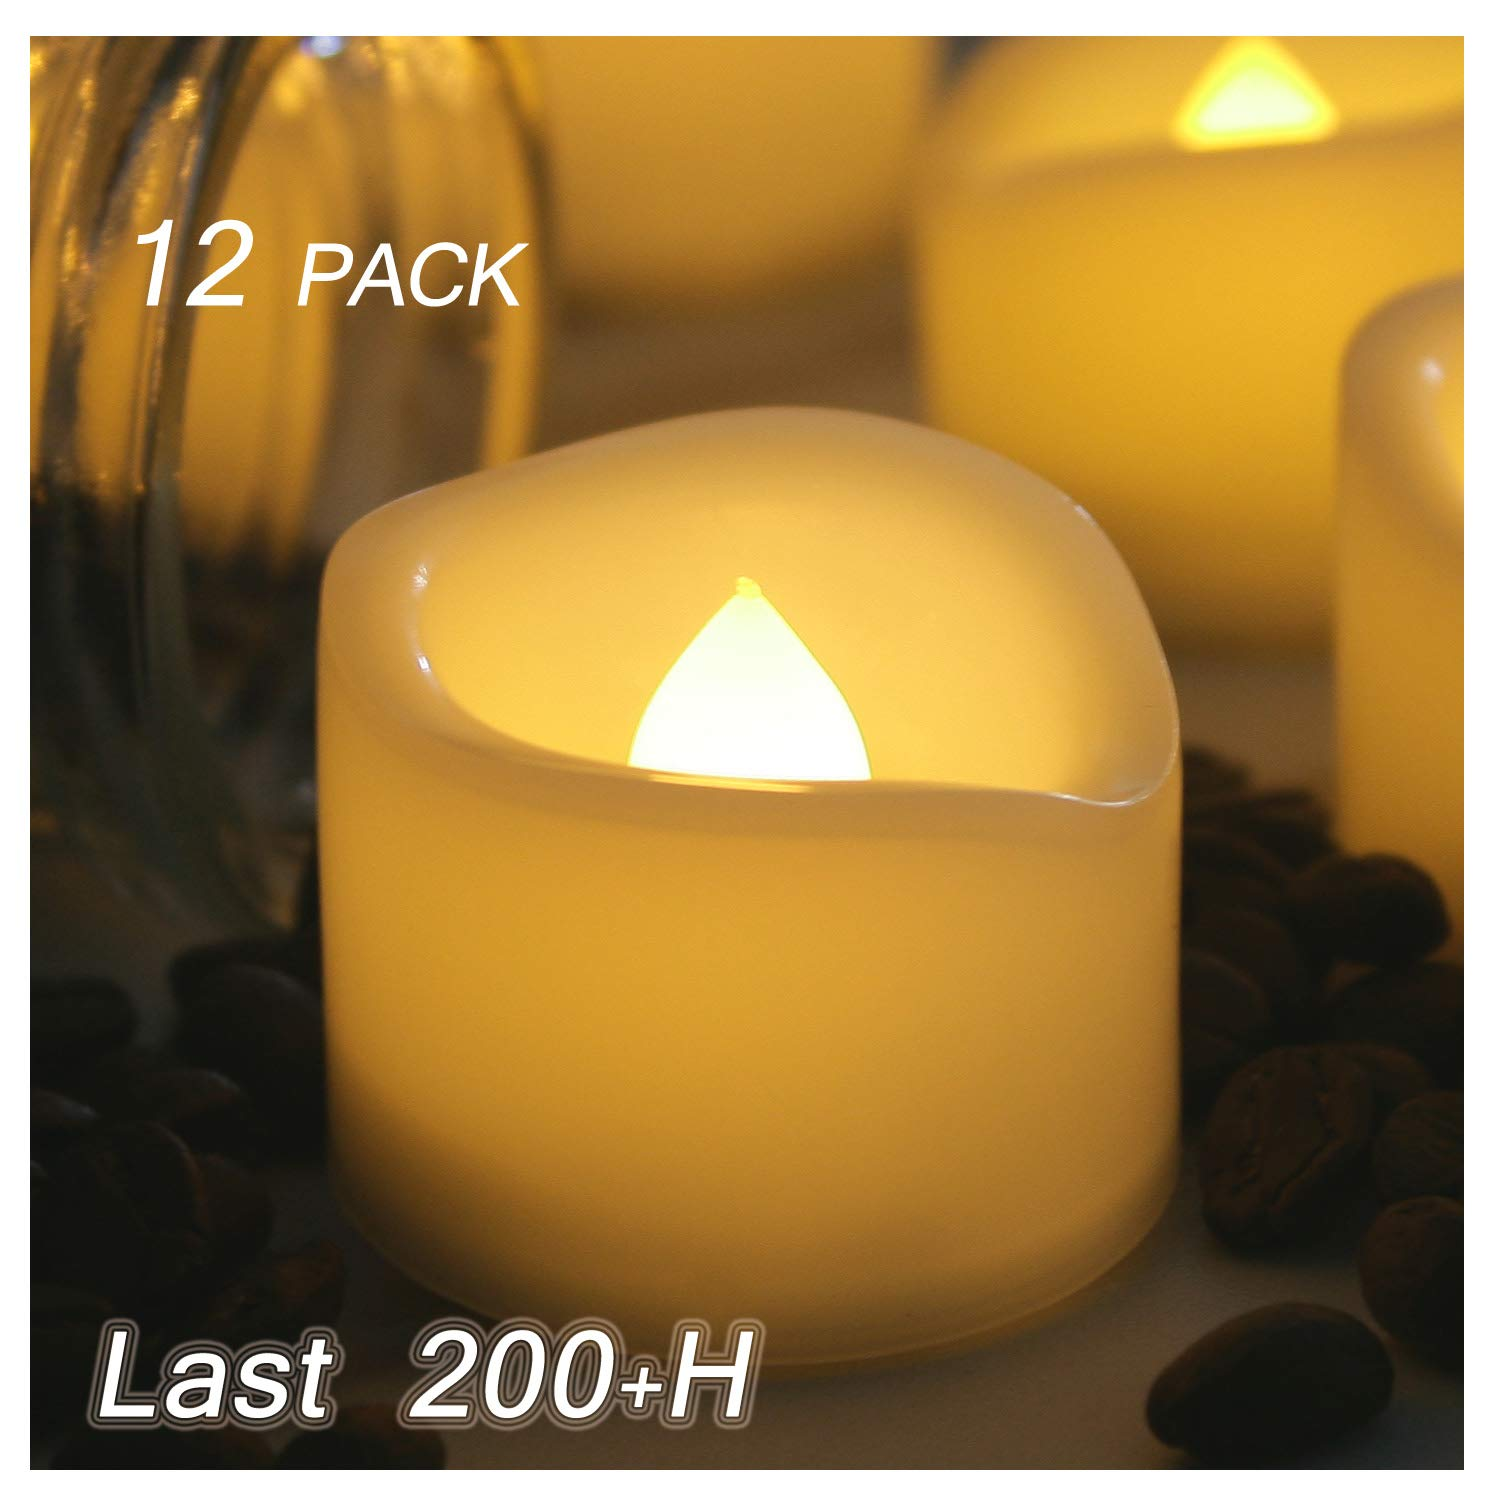 12 Pack Small Battery Operated Flameless LED Votive Candles Realistic Flickering Electric Fake Tea Lights Bulk Set Baptism Party Wedding Decorations Centerpieces Home Decor Long Lasting Batteries Incl